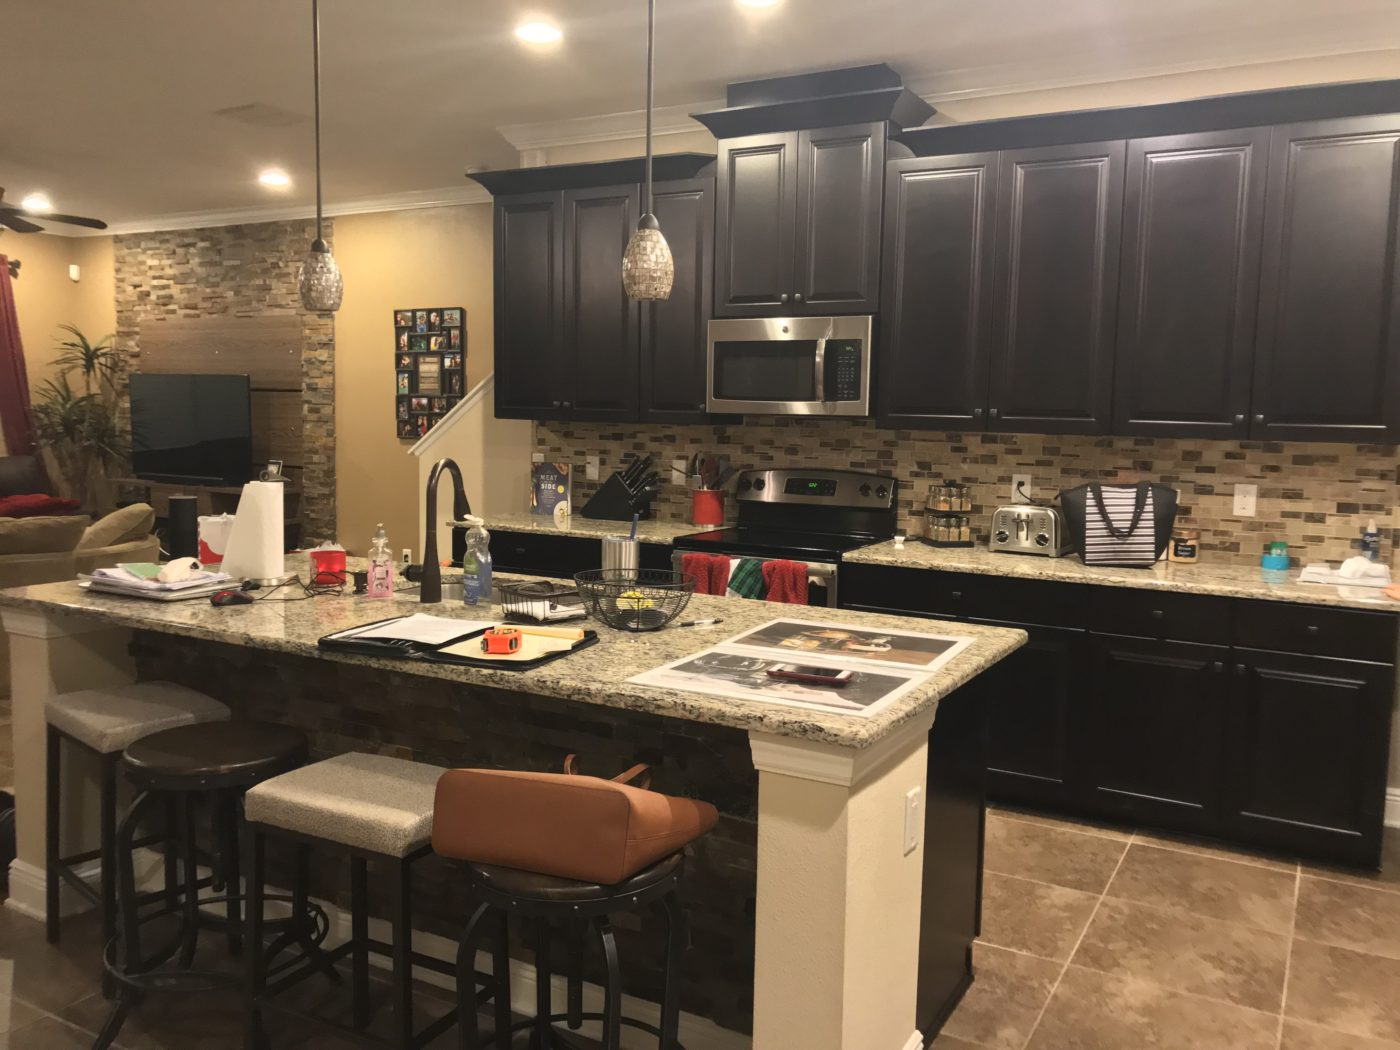 Cluttered kitchen with small appliances, dish soap, spices, stacks of papers, paper towels etc. all over the counter tops.